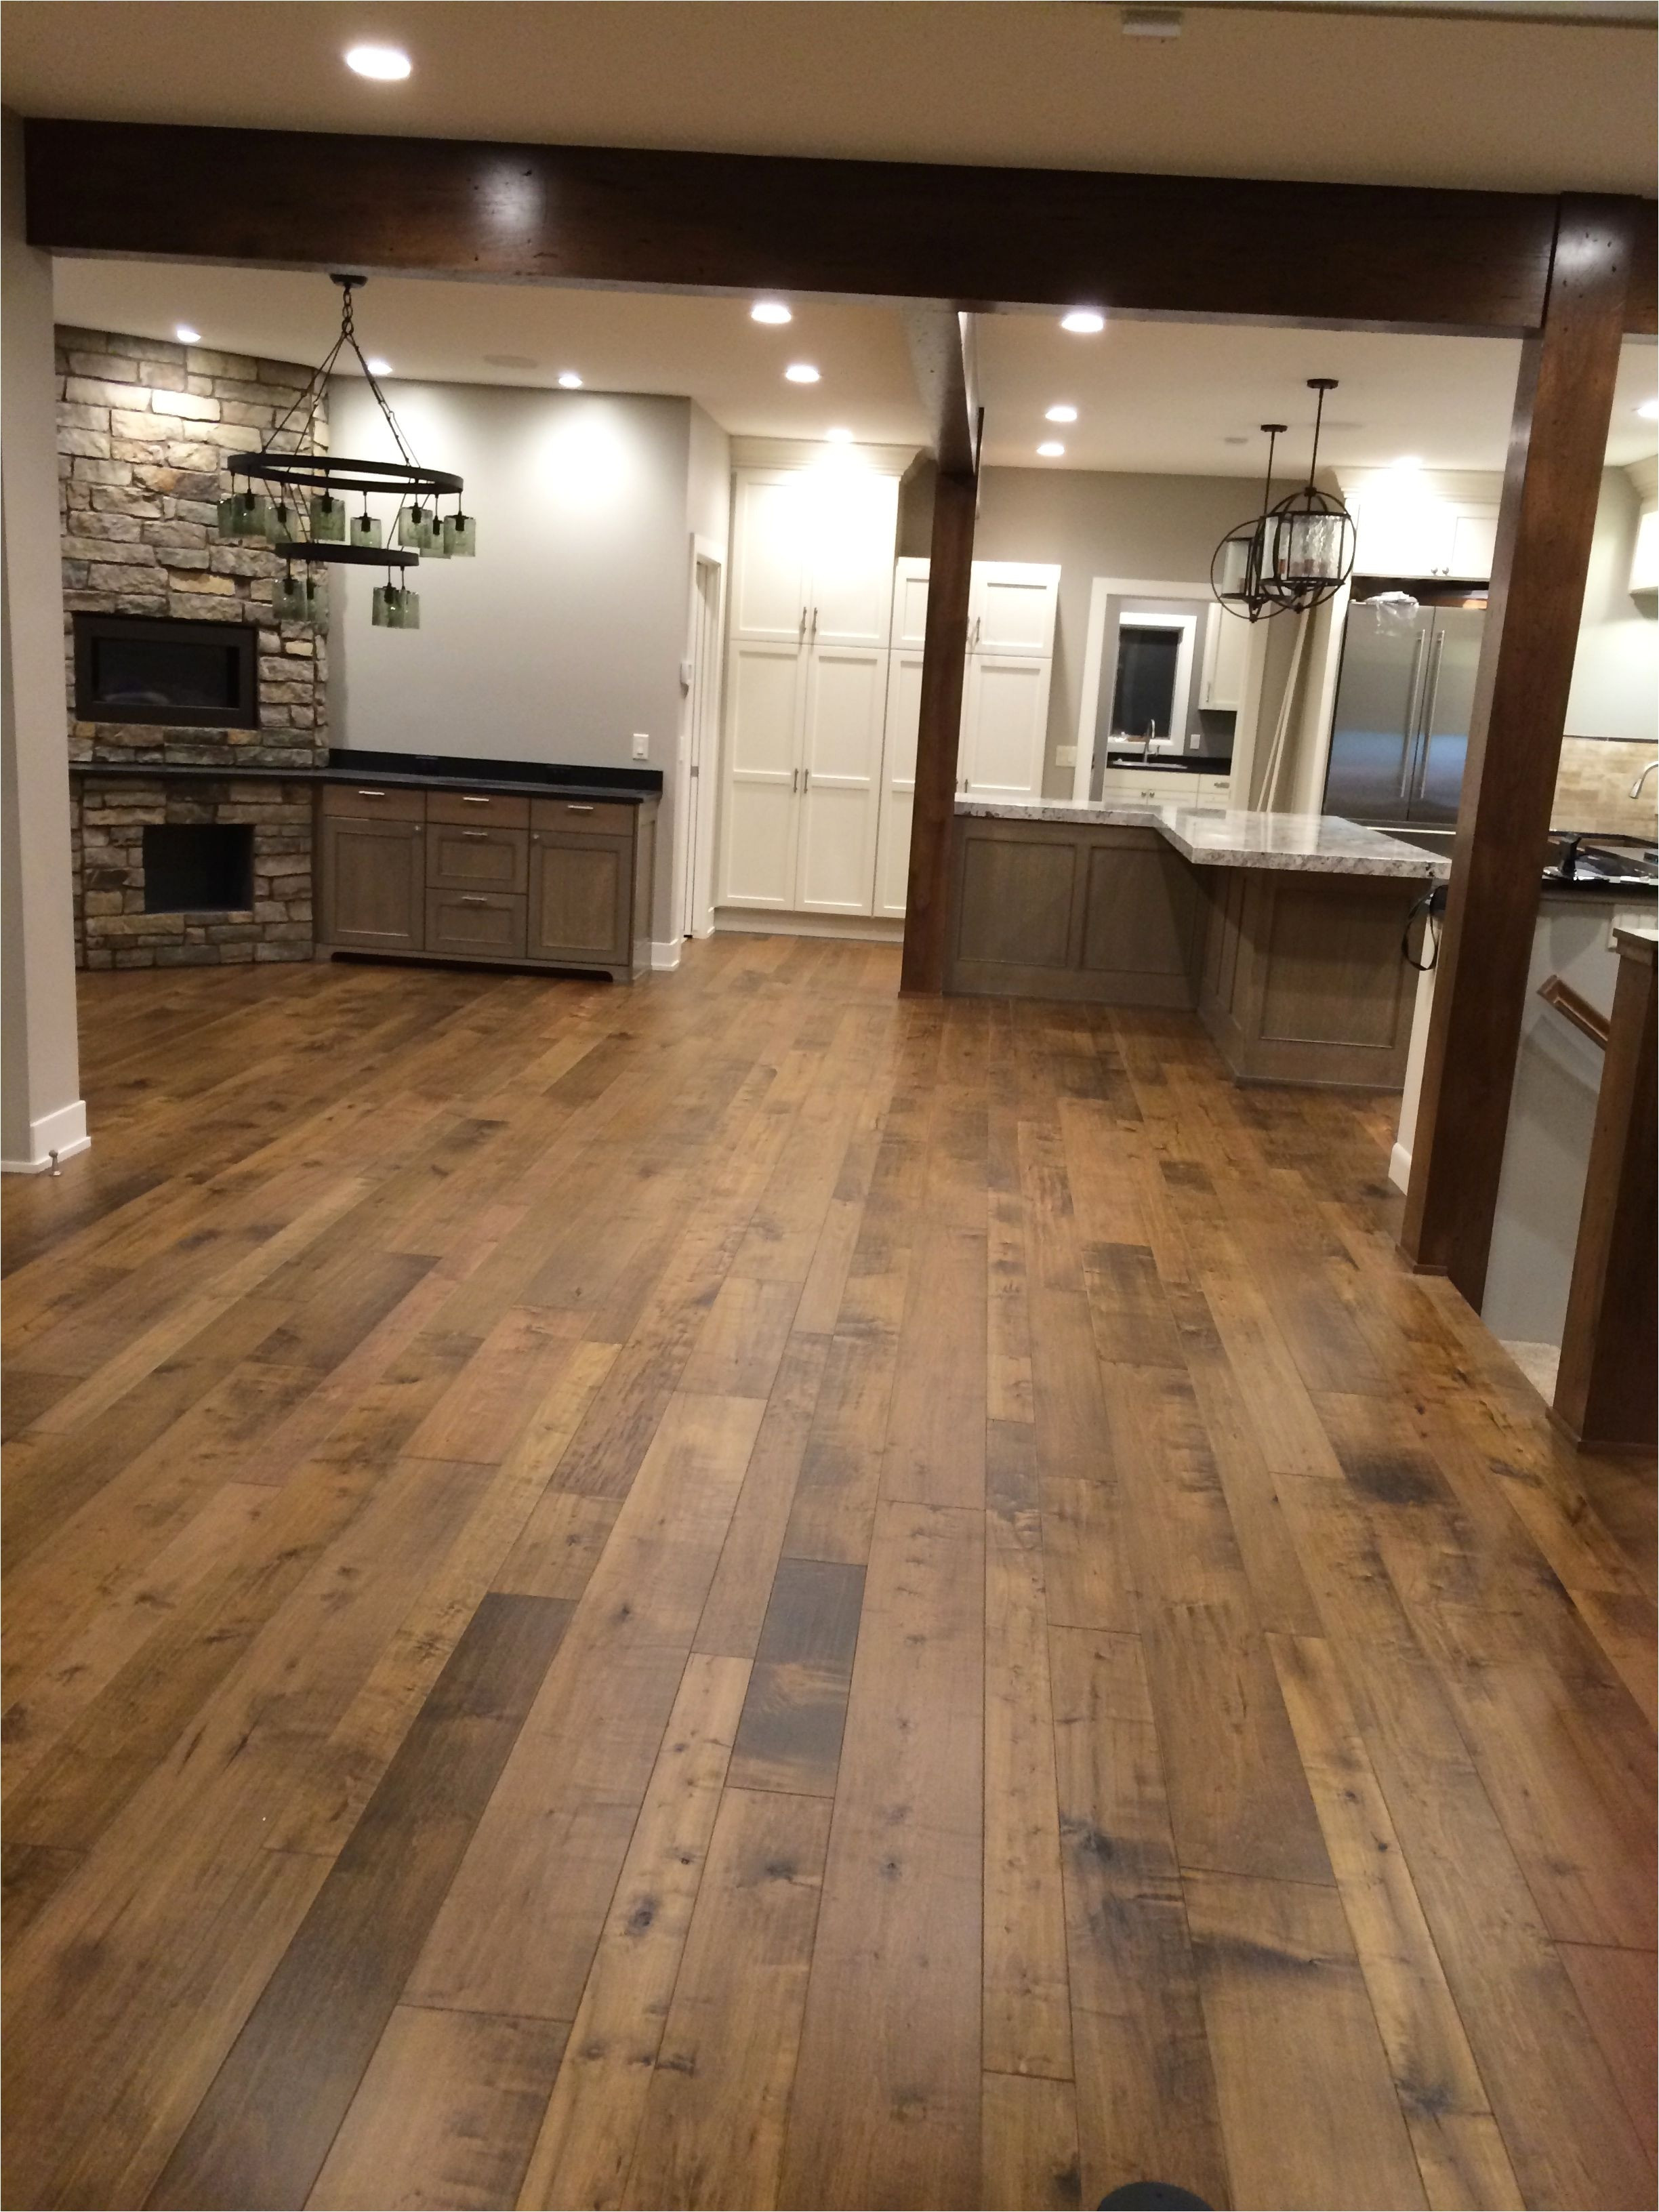 lowes canada hardwood flooring sale of flooring design ideas find ideas and inspiration for flooring in 37 elegant stain laminate flooring stock